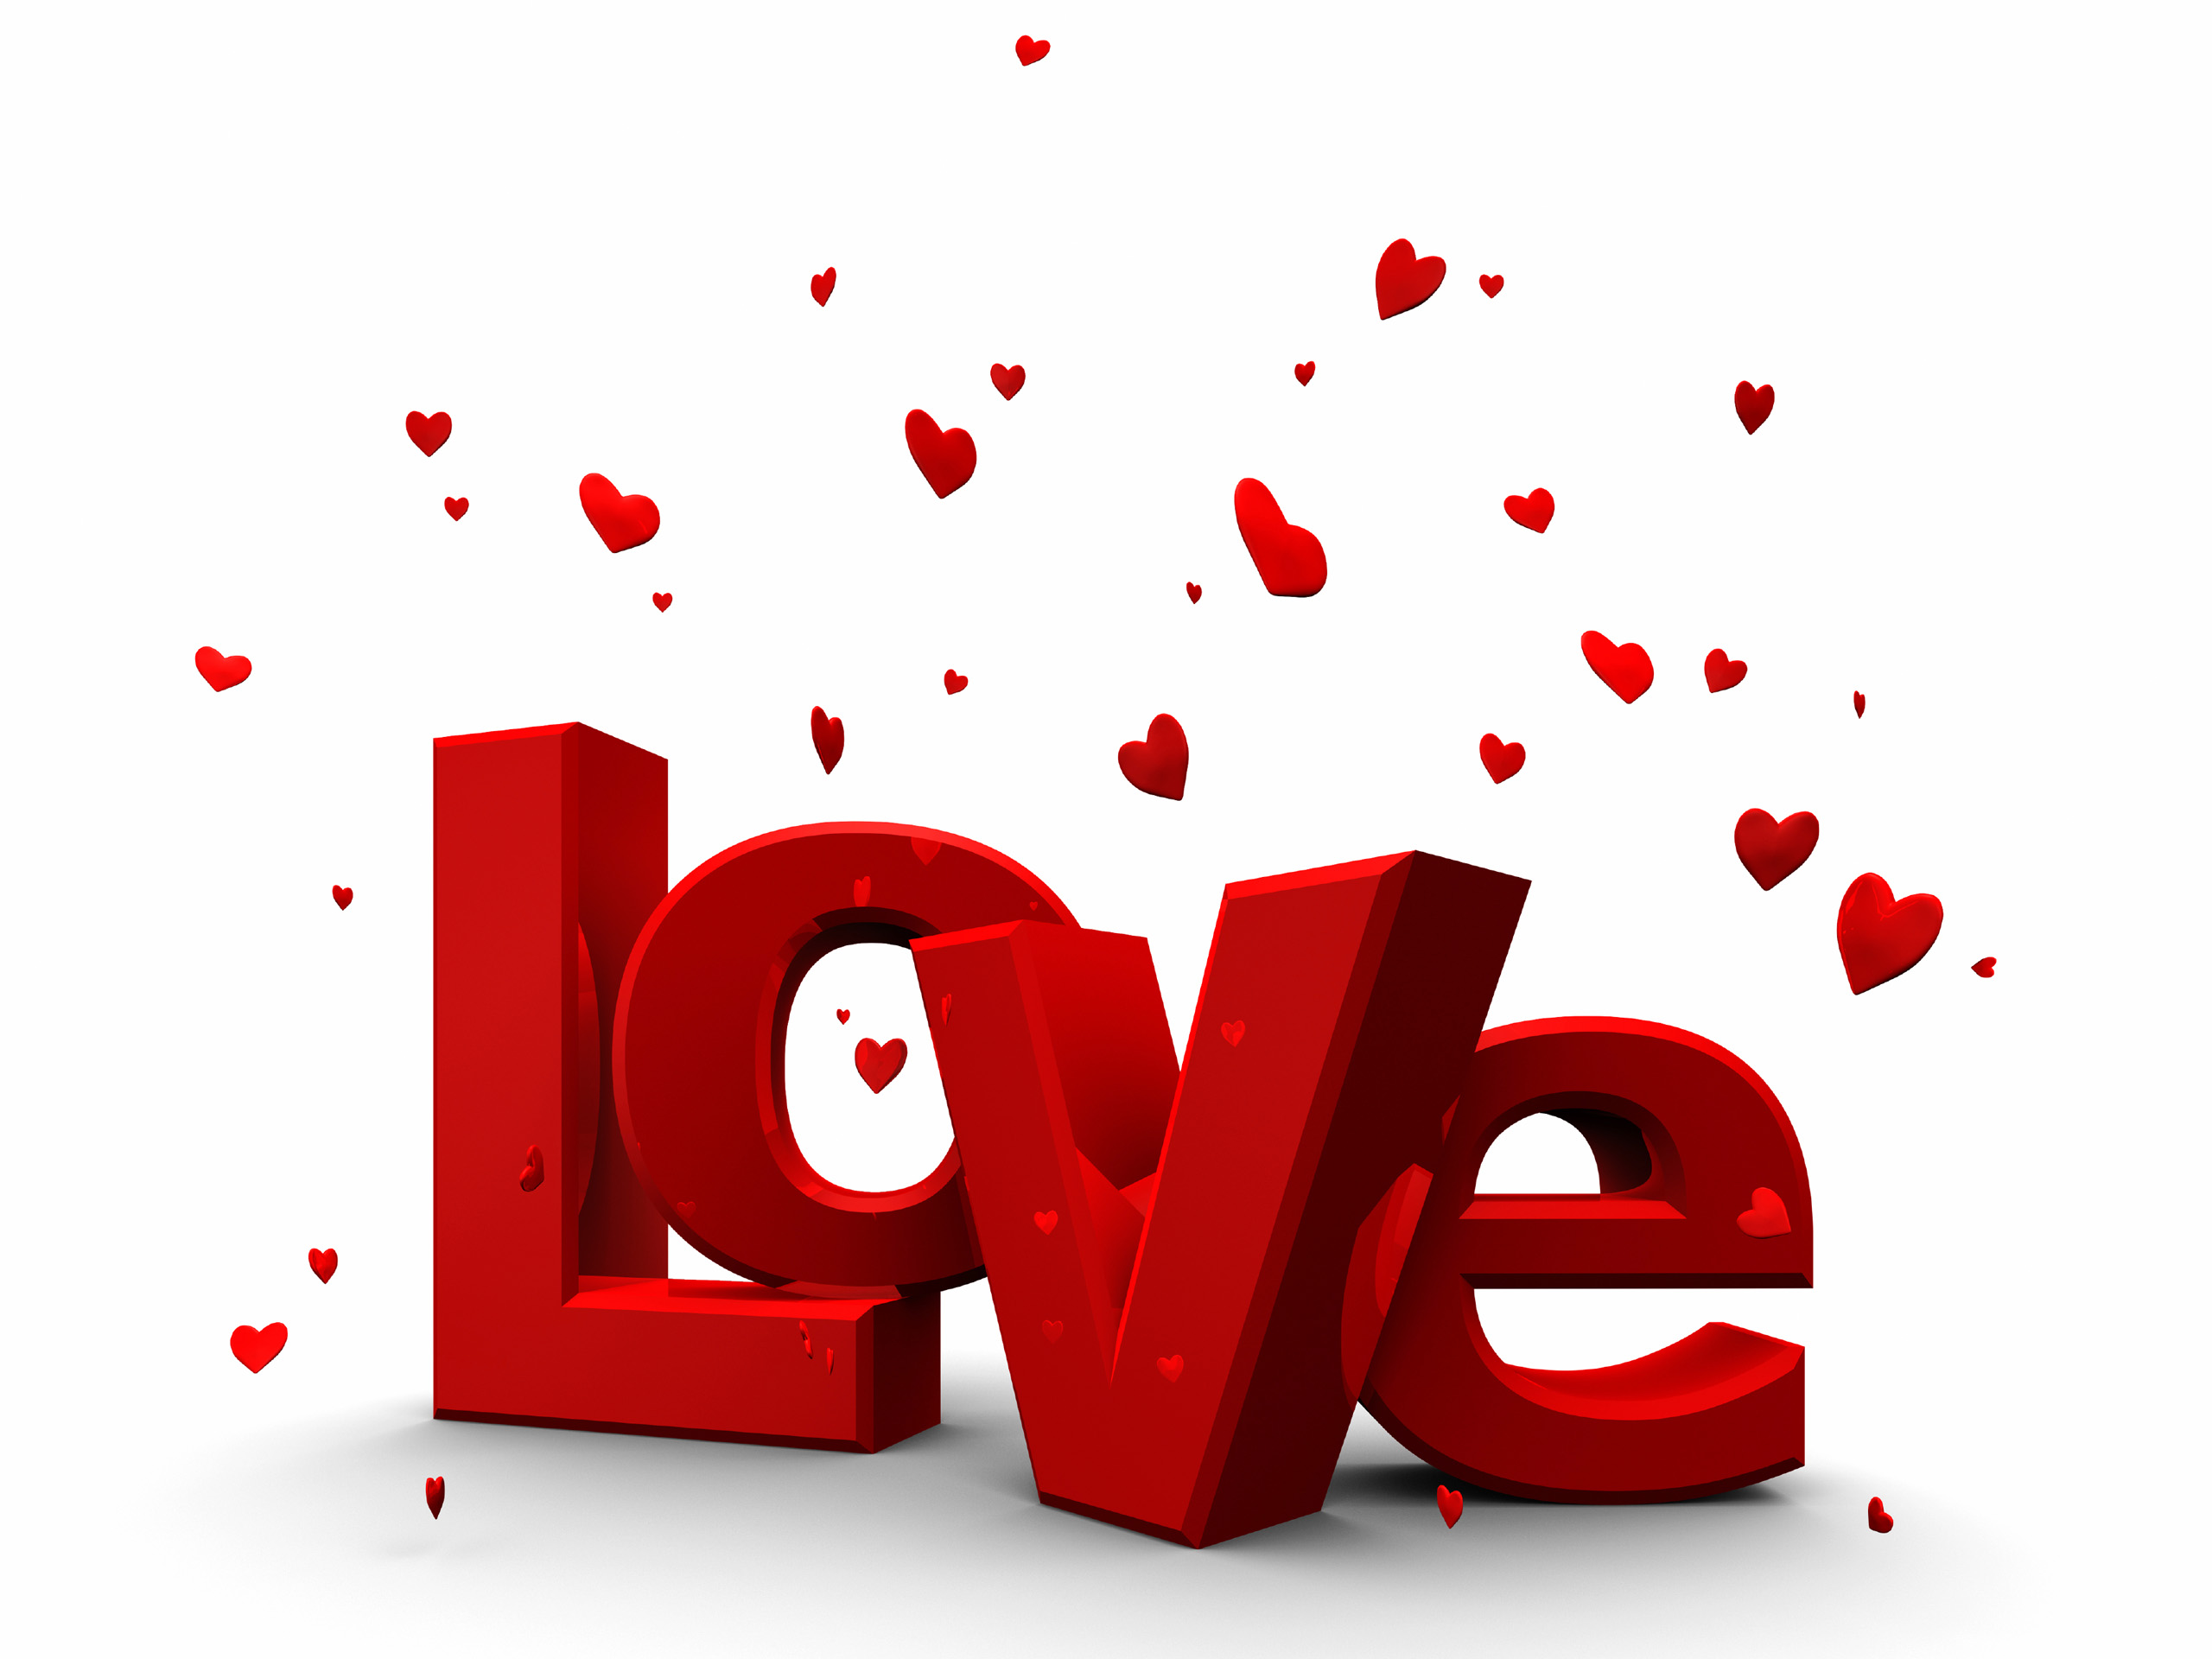 Love Images Hd Quality : Love High Definition Wallpapers - Wallpaper, High Definition, High Quality, Widescreen